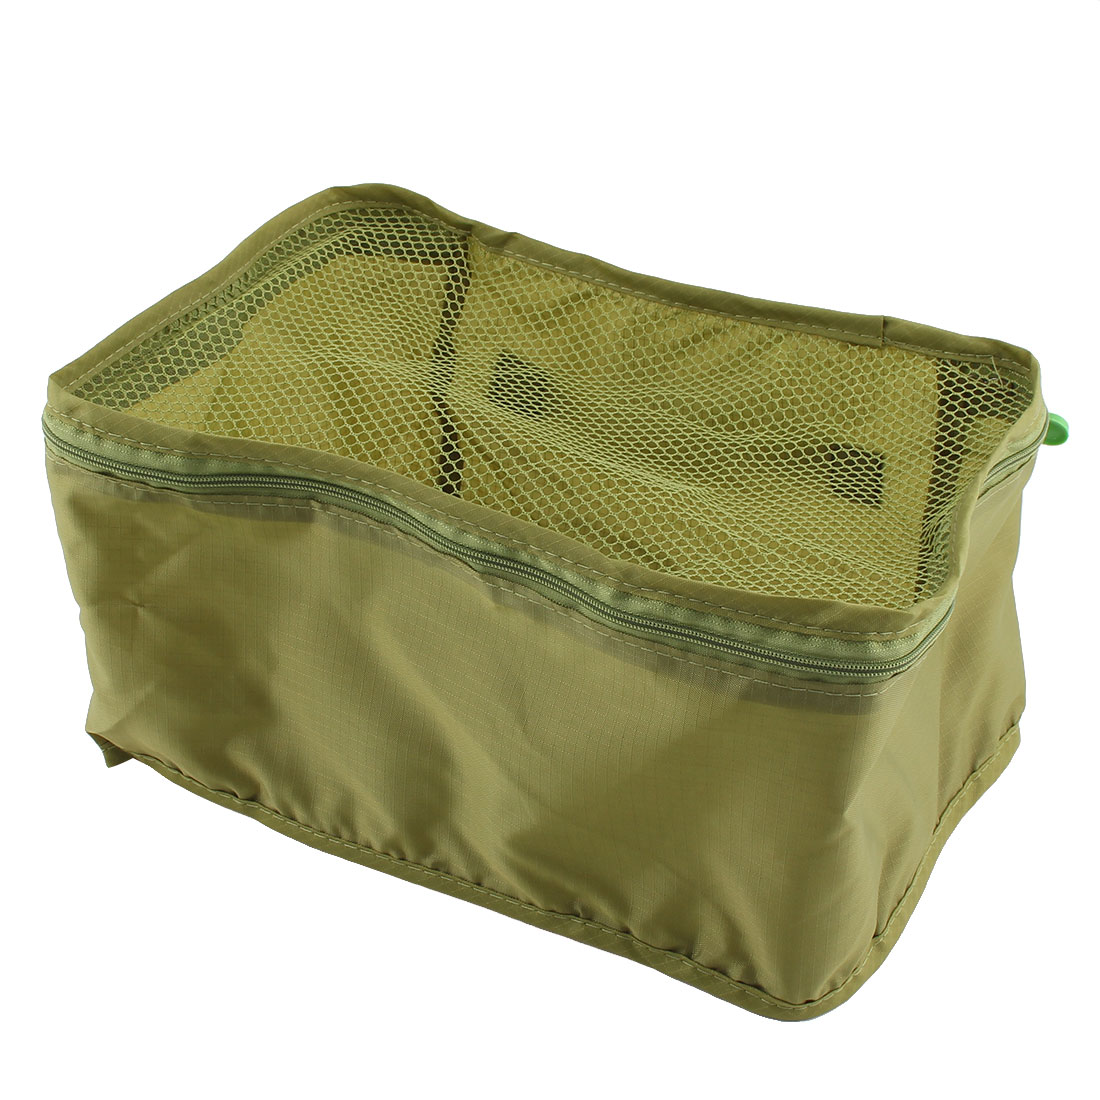 Travel Admission Foldable Zipper Closure Package Pouch Mesh Bag Frost Green - image 2 de 5